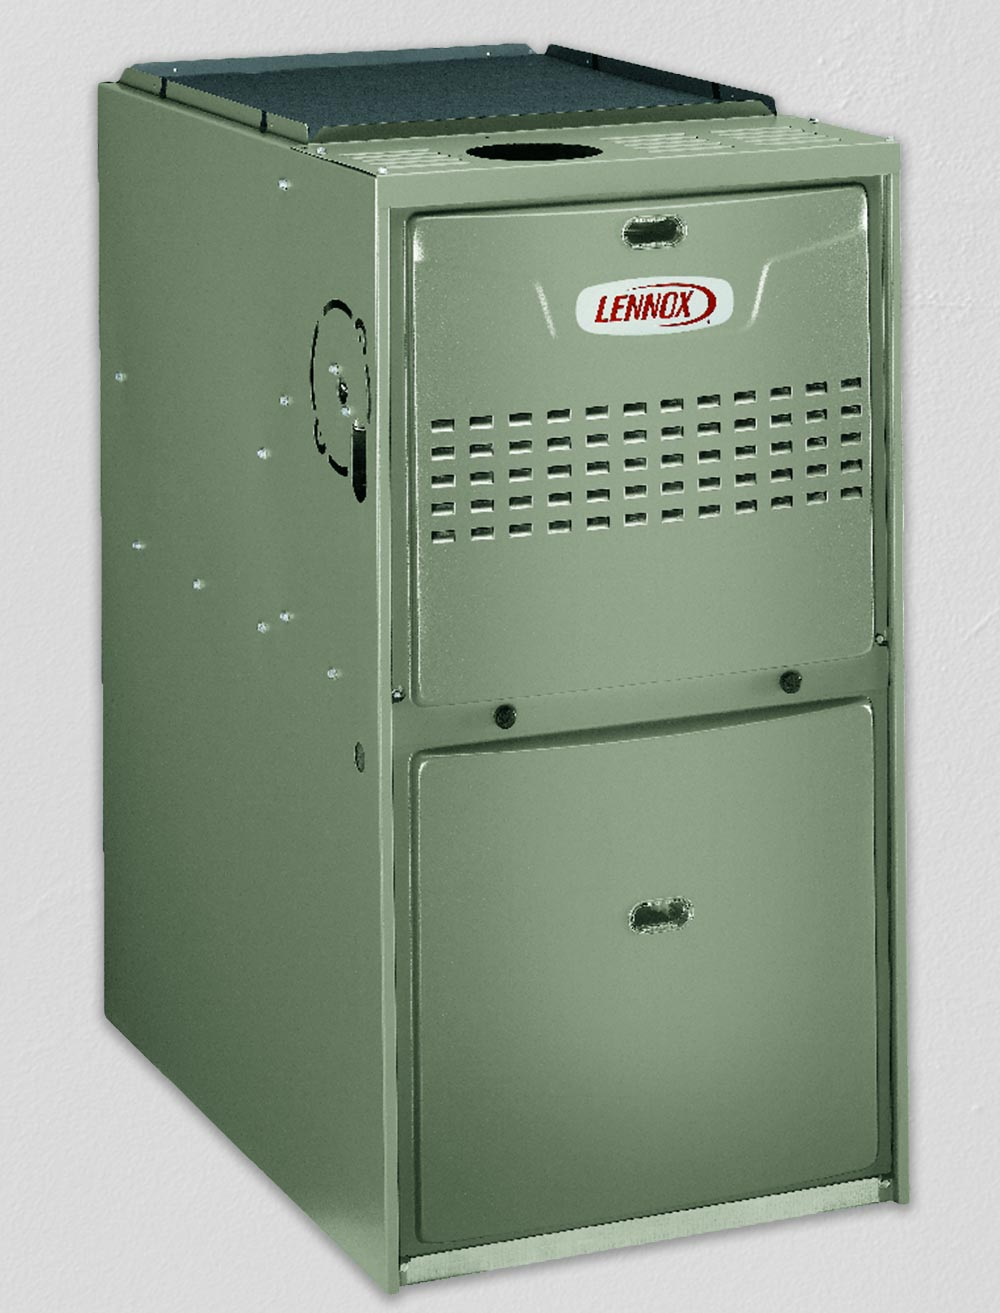 Lennox ML180UH 80% Efficient gas furnace by Airplus Home Services